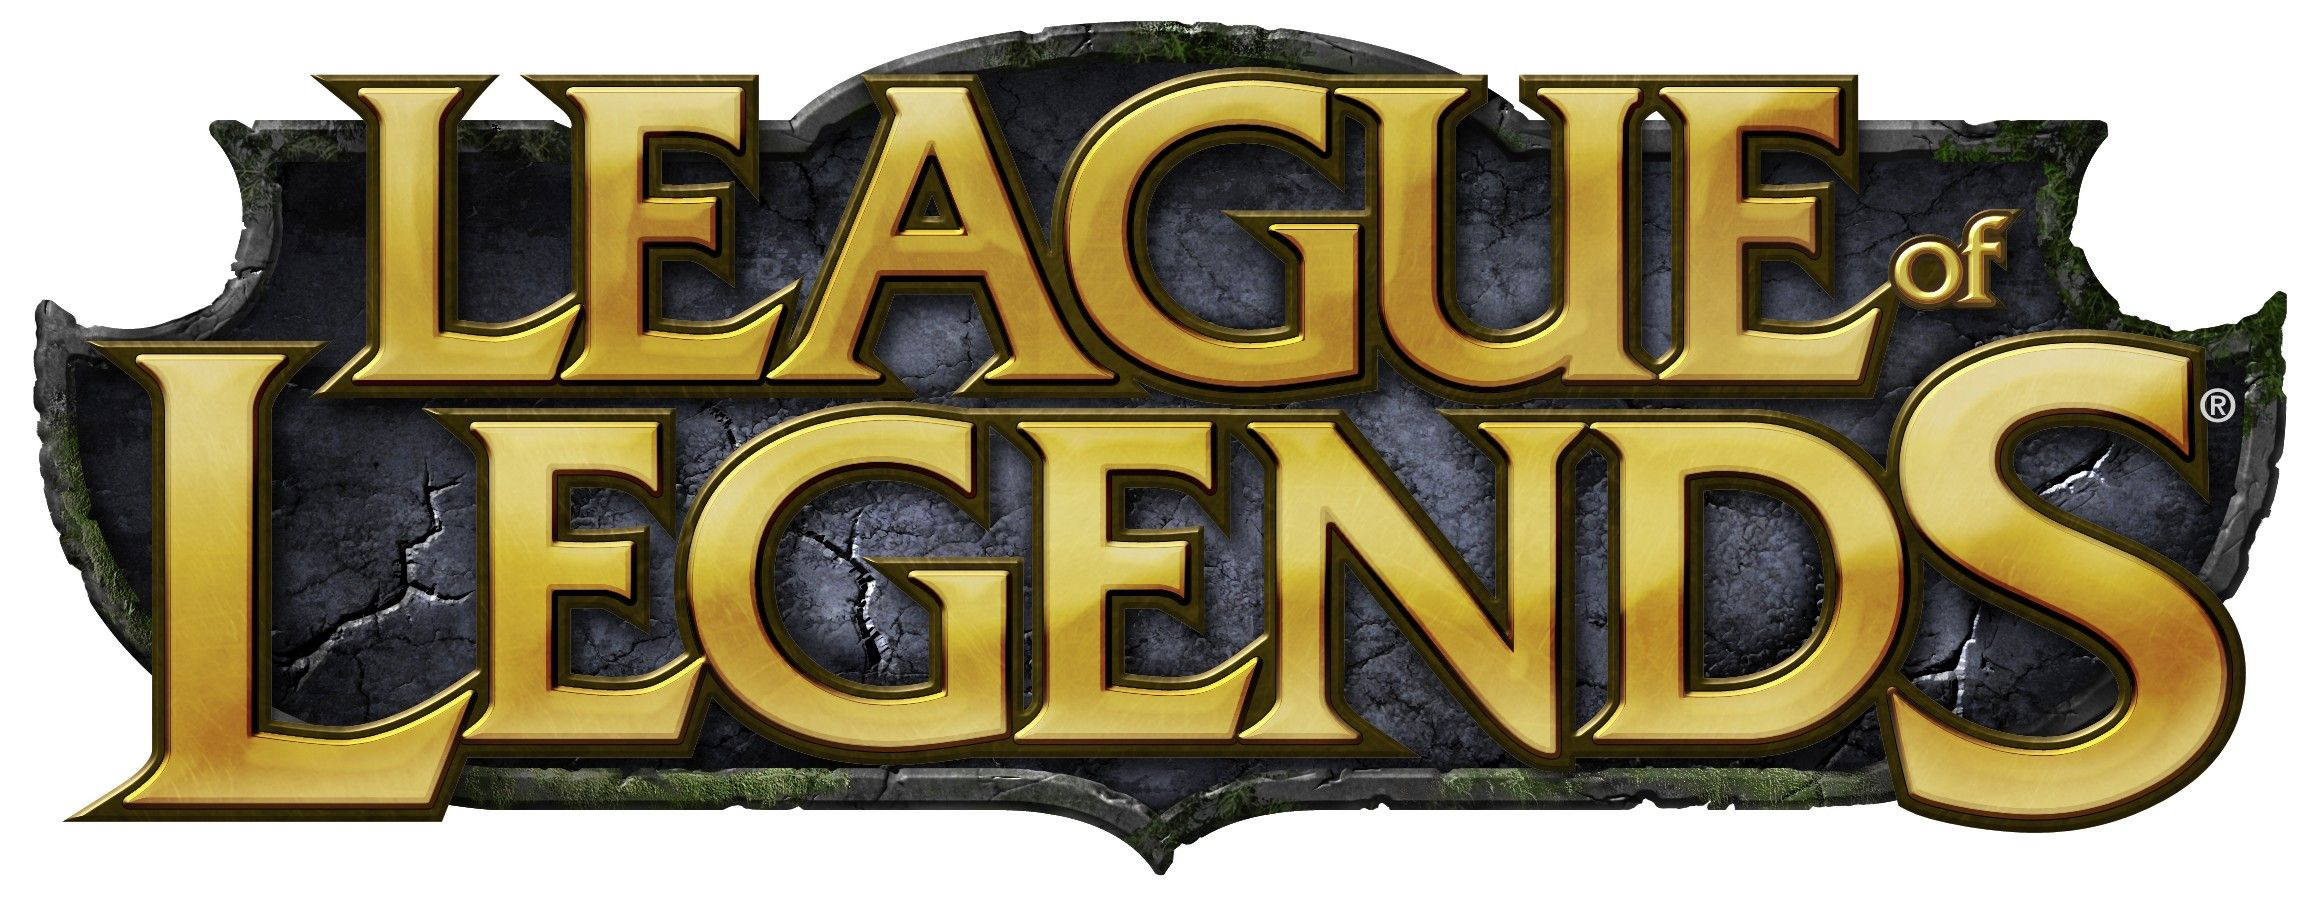 League of legends logo lol video game vector eps free download league of legends logo lol video game vector eps free download logo buycottarizona